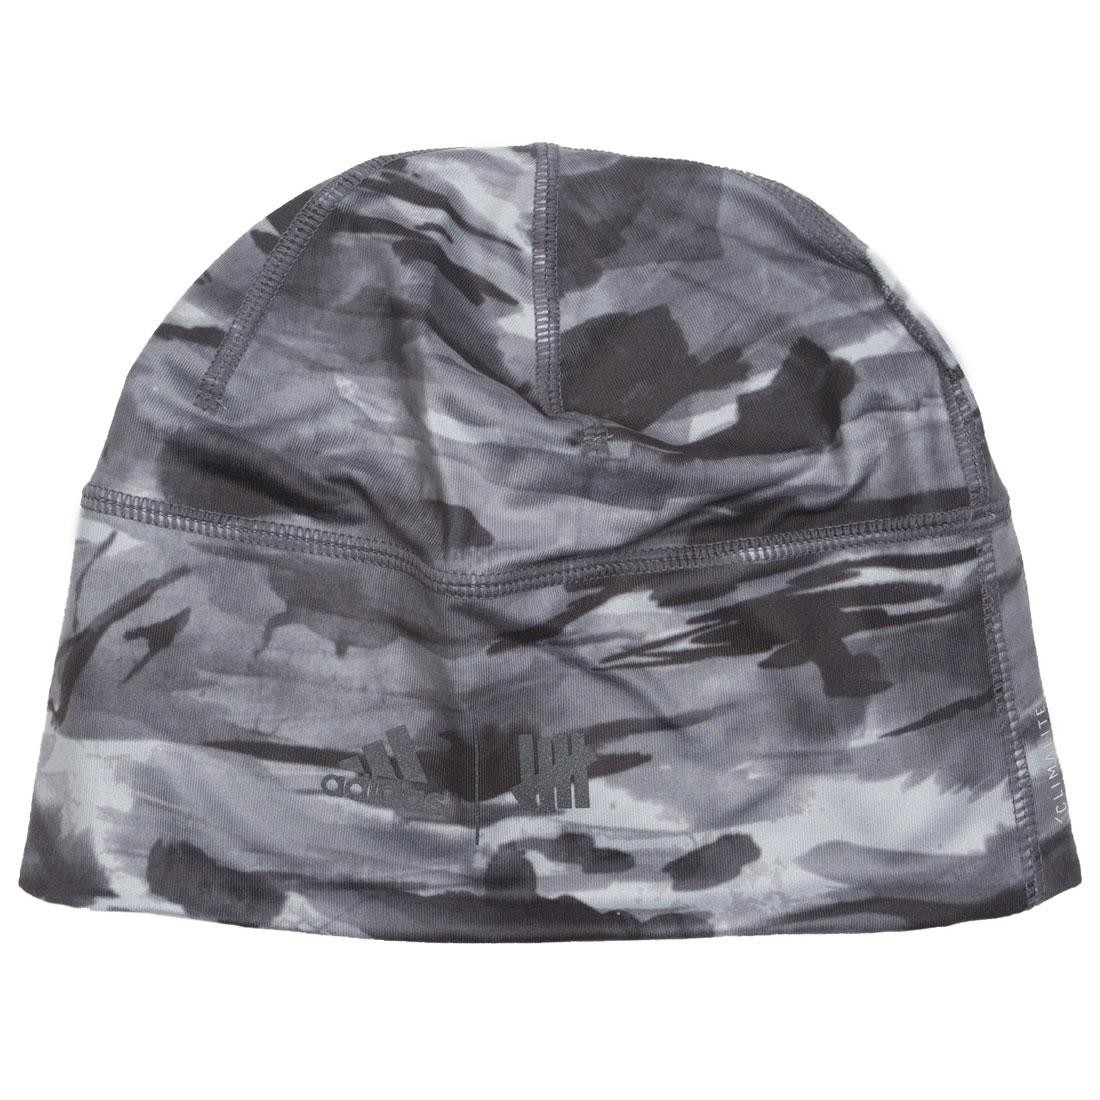 Adidas x Undefeated Running Beanie black reflective utility black shift grey c09a812e1f9